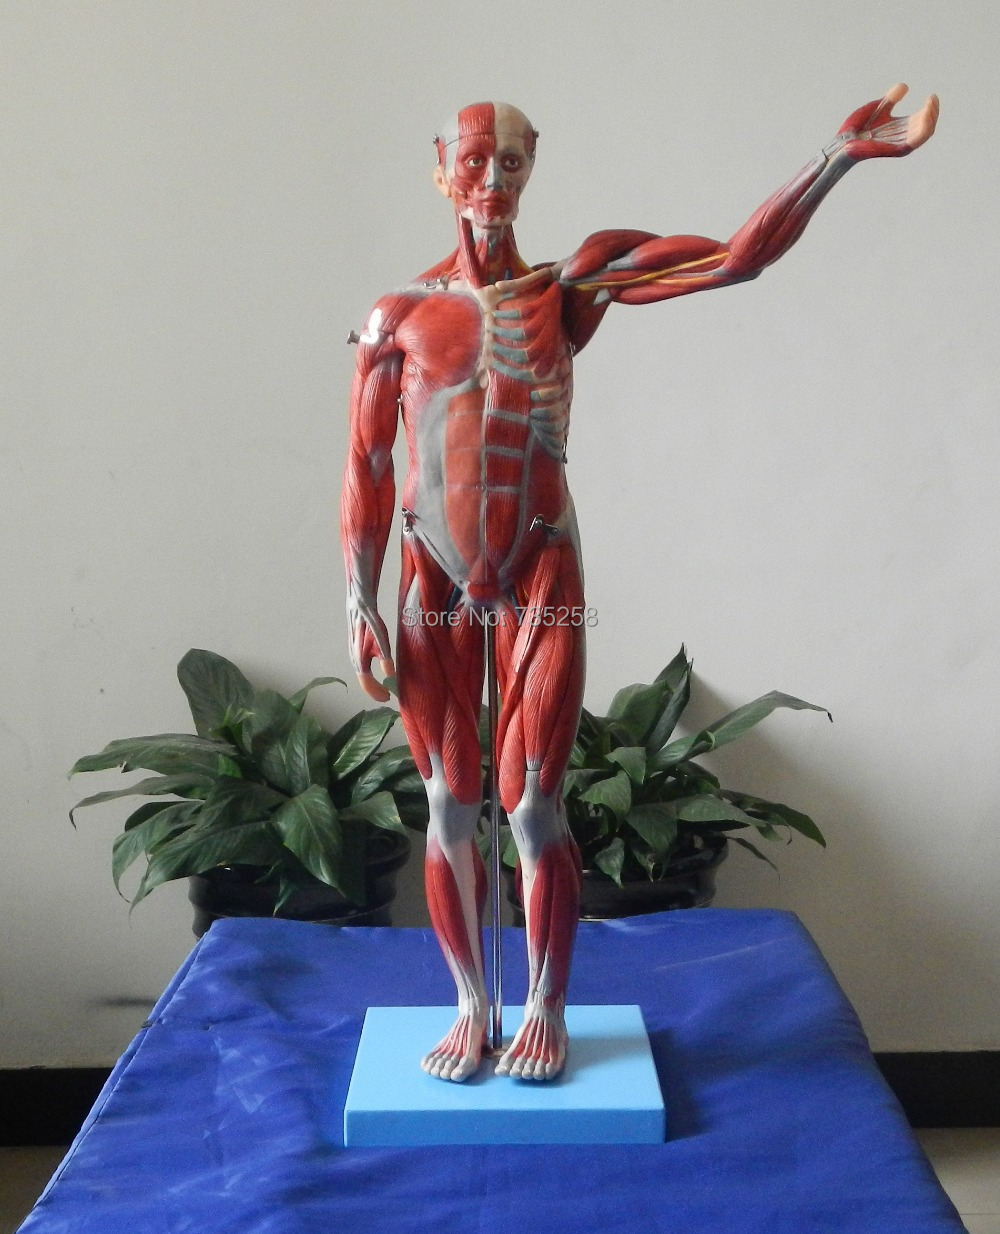 ISO Body Muscles Anatomical Model,Human Muscle Anatomy Teaching Model,Human Muscle Breakdown Model iso anatomical model of appendix and caecum human appendix